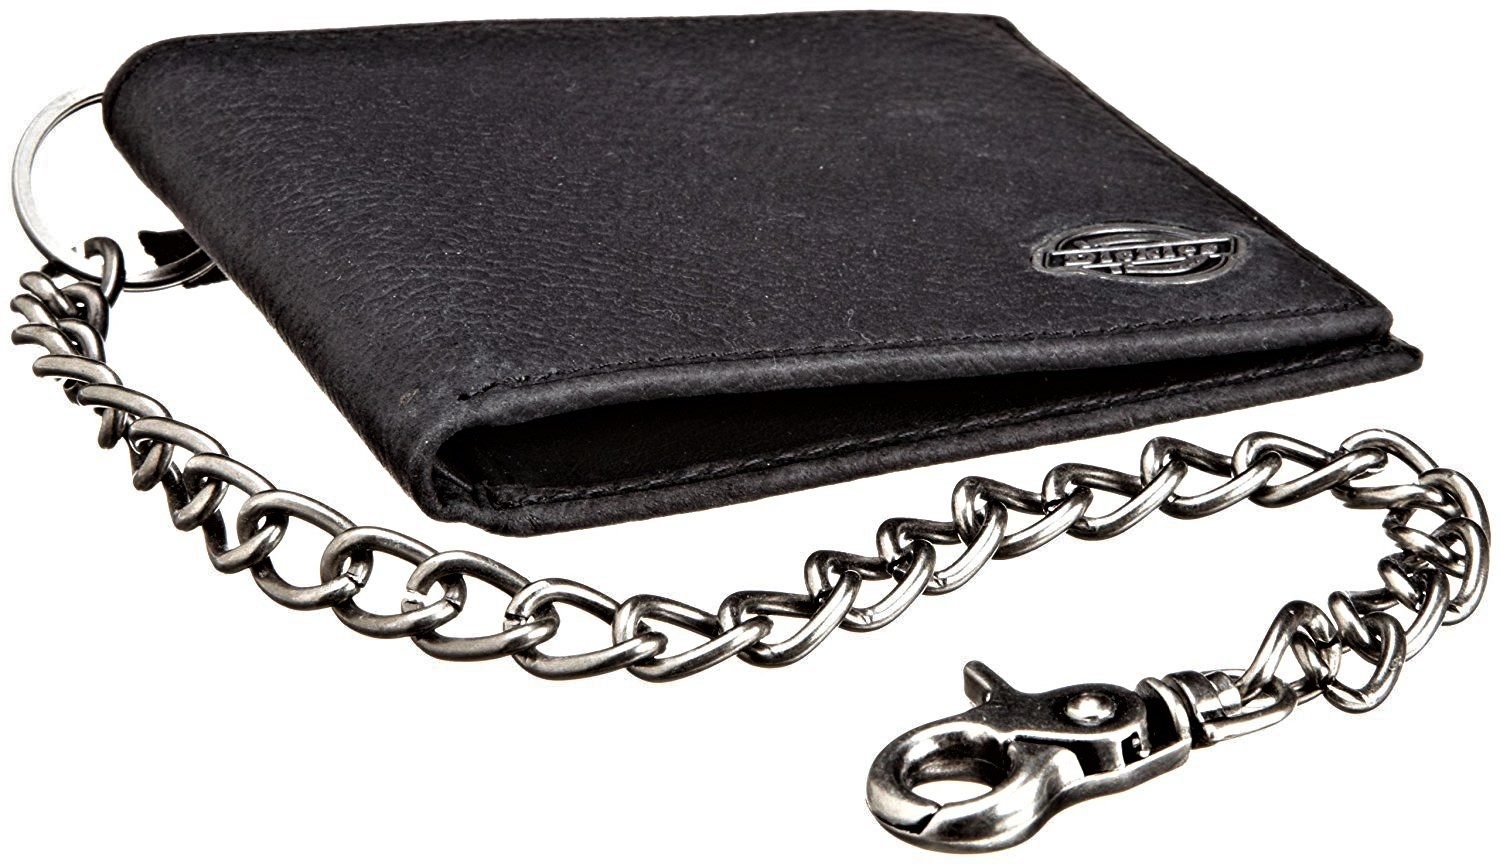 Dickies-Men-039-s-Leather-Slimfold-Wallet-With-Chain thumbnail 6